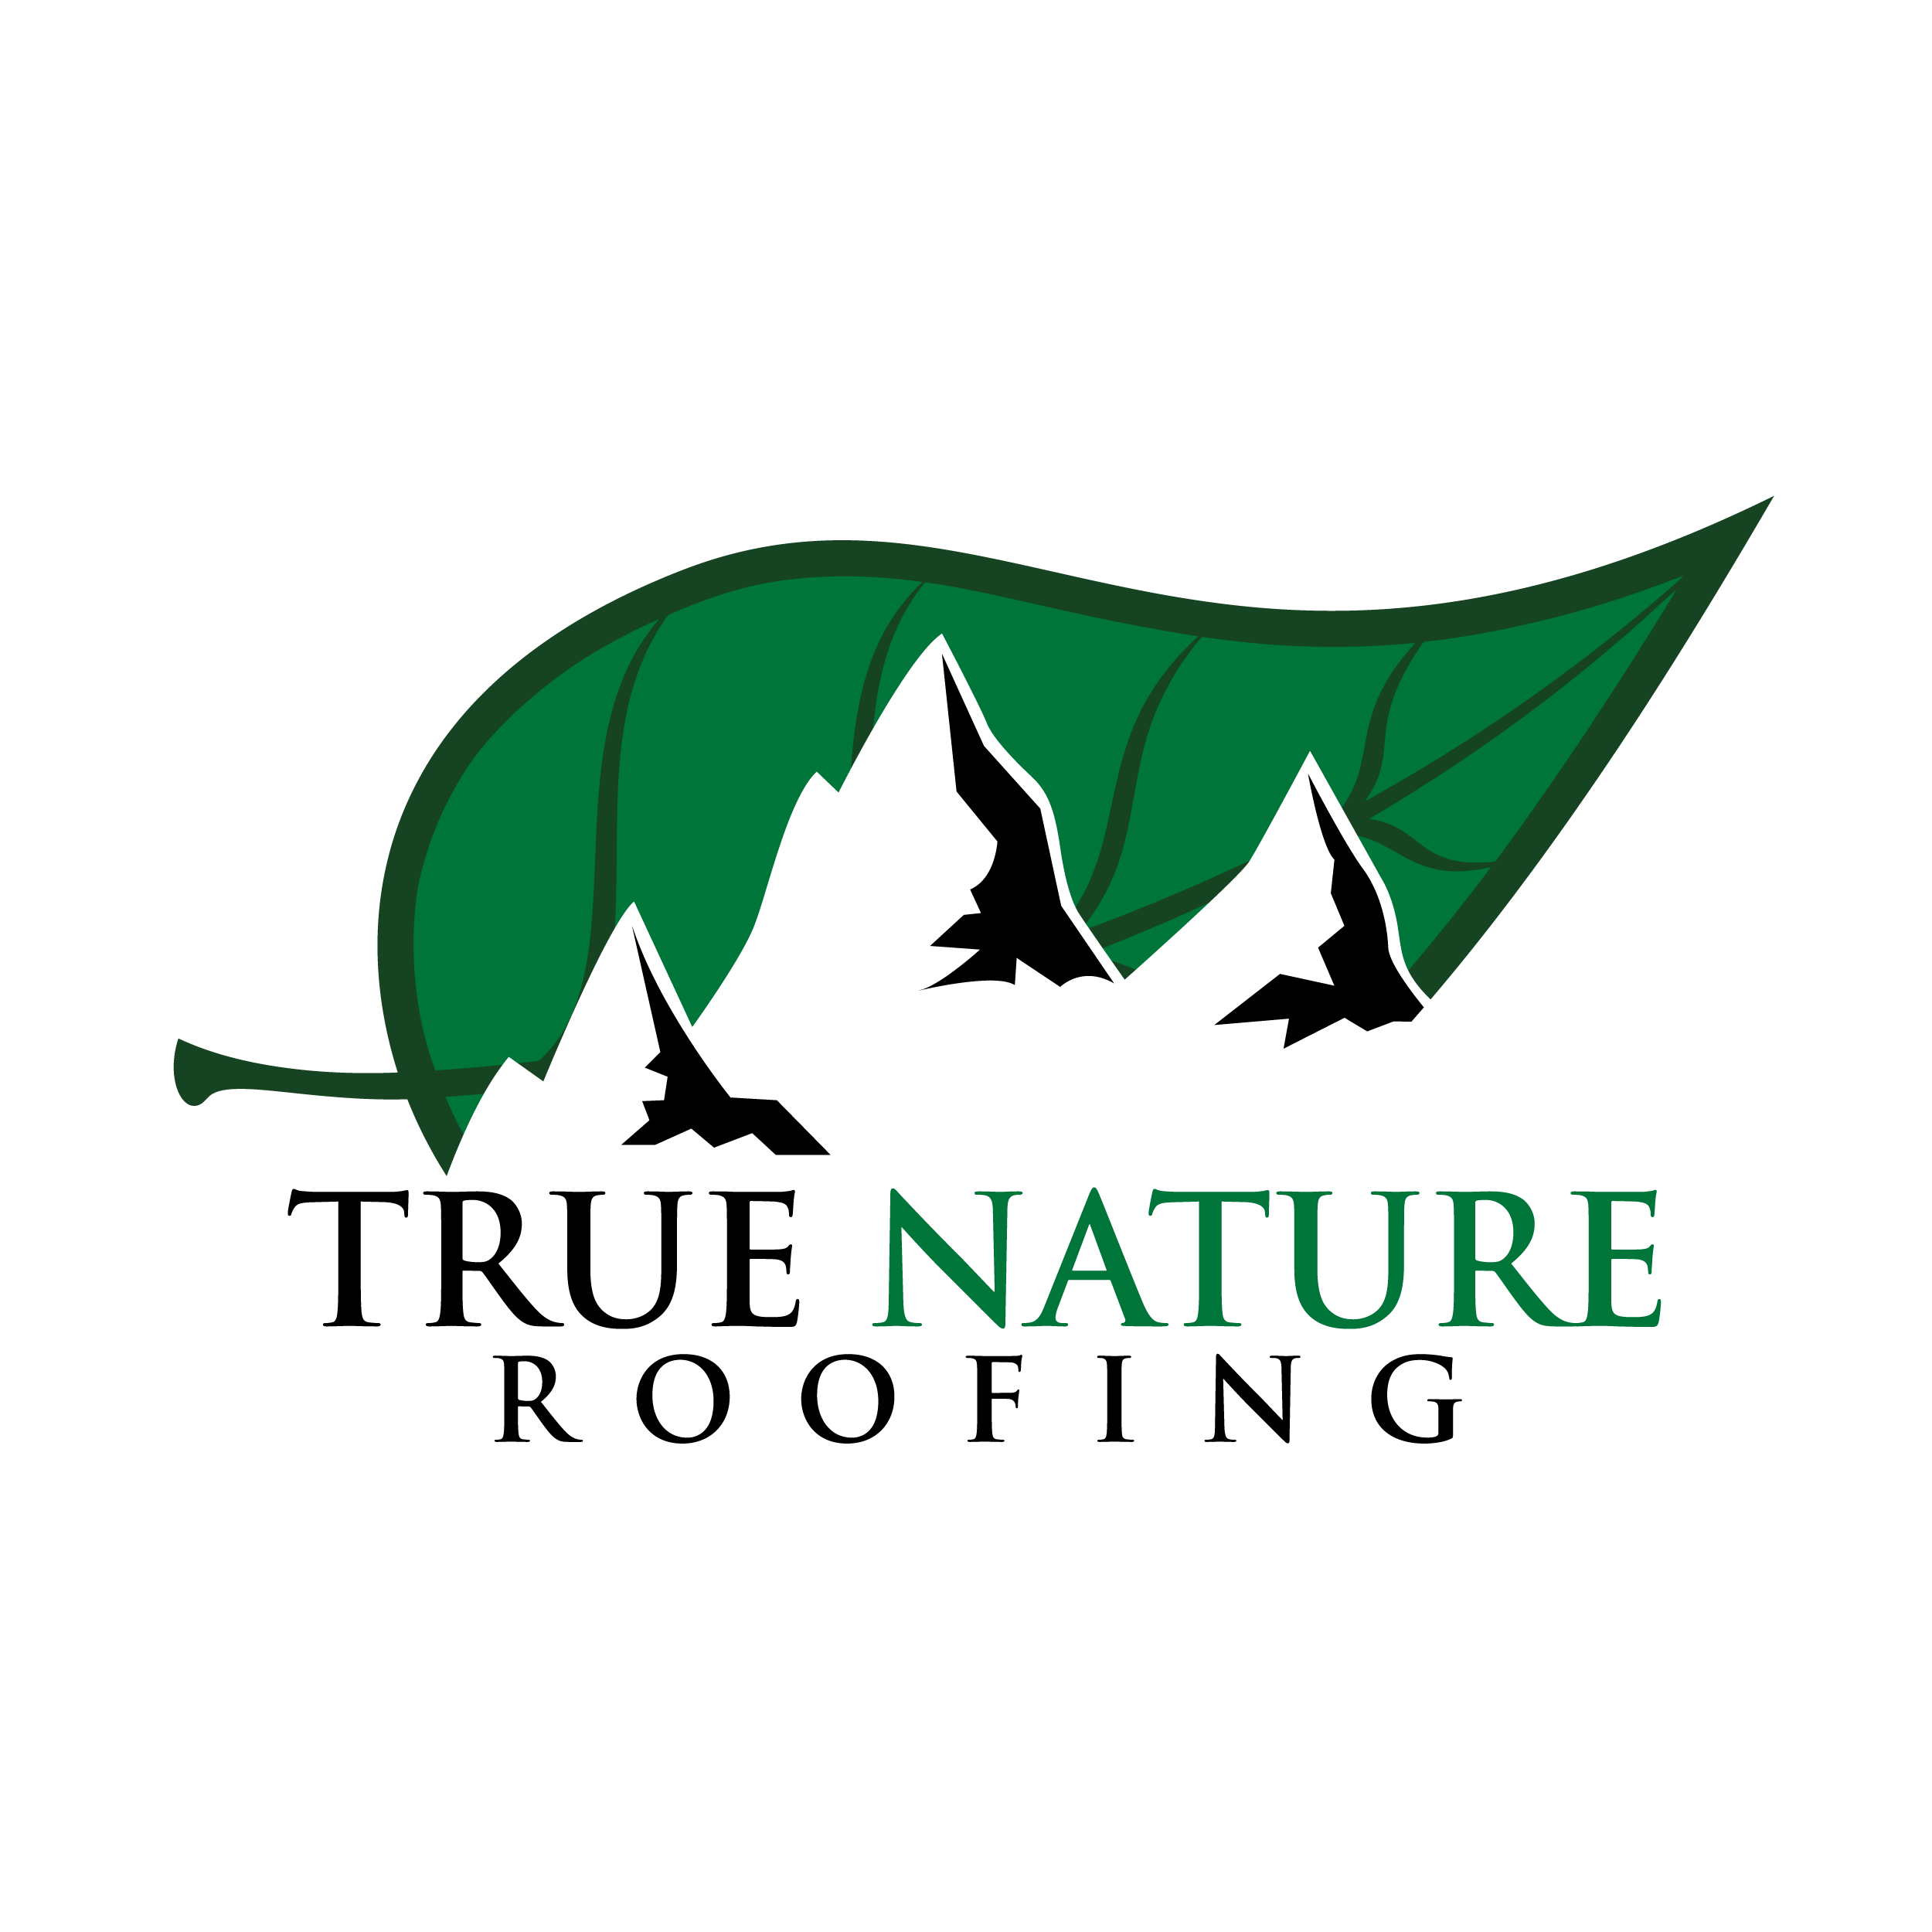 True Nature Roofing Coupons Near Me In Colorado Springs